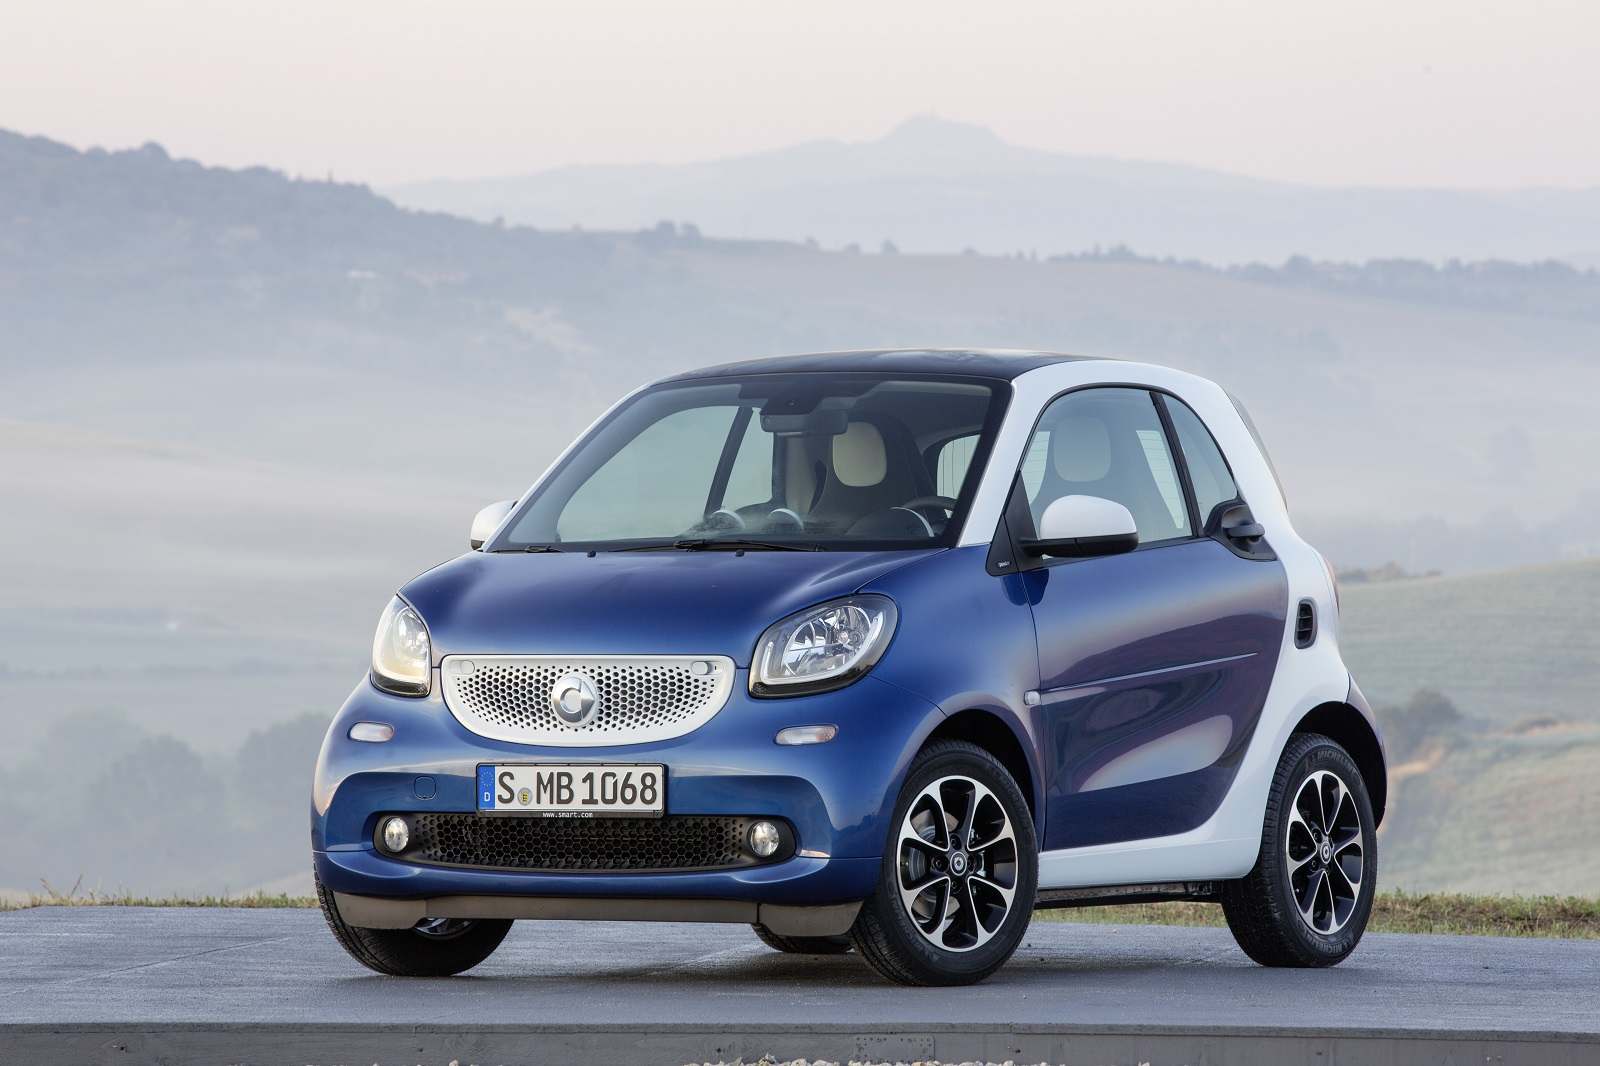 ... fortwo Review, Ratings, Specs, Prices, and Photos - The Car Connection